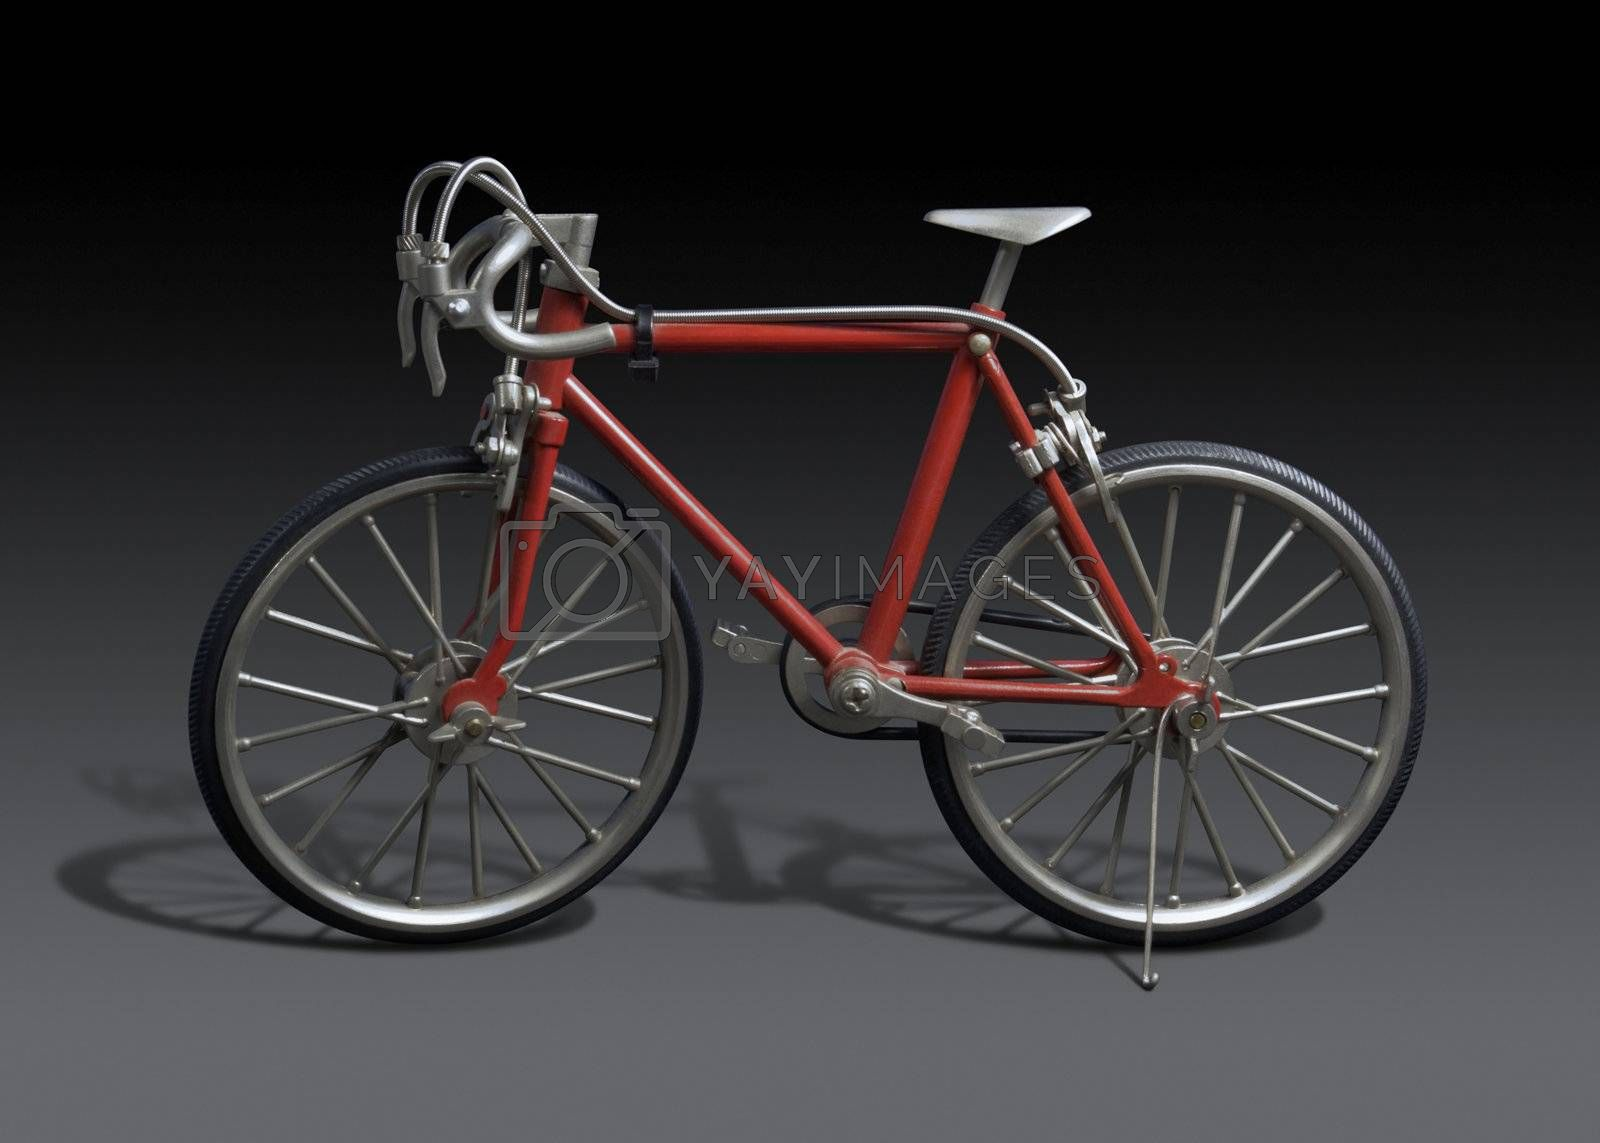 model of a red framed bicycle in dark grey back, with clipping path